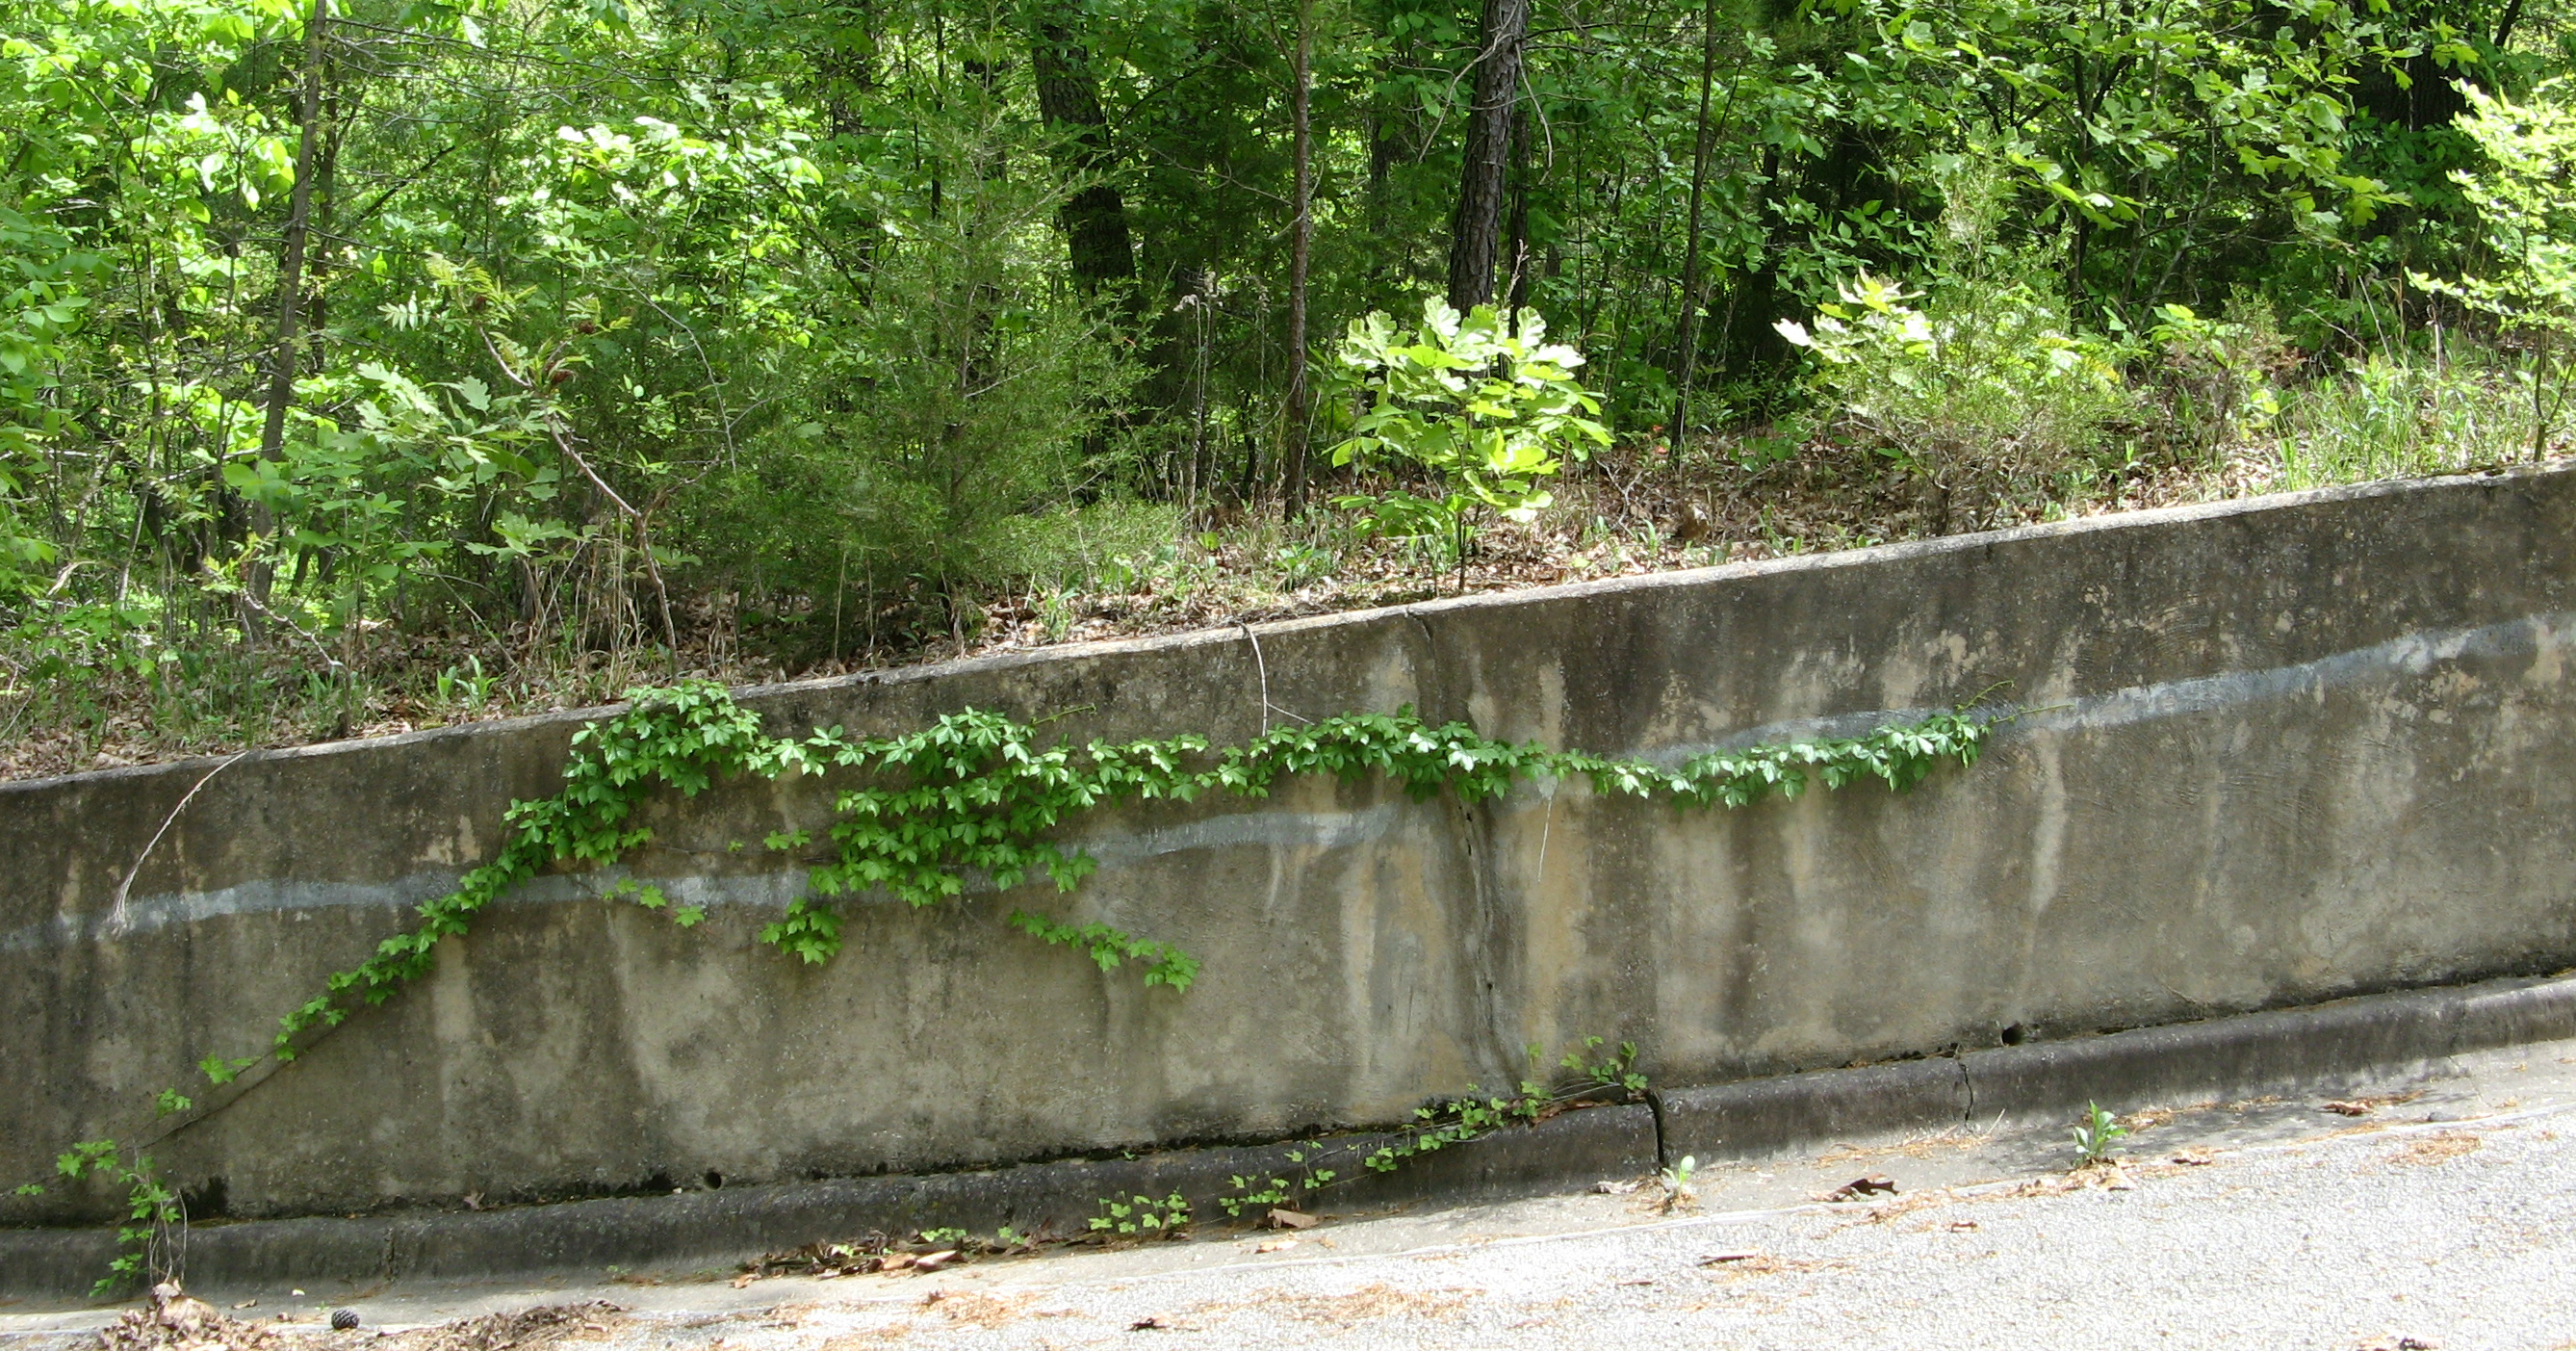 Garland on retaining wall